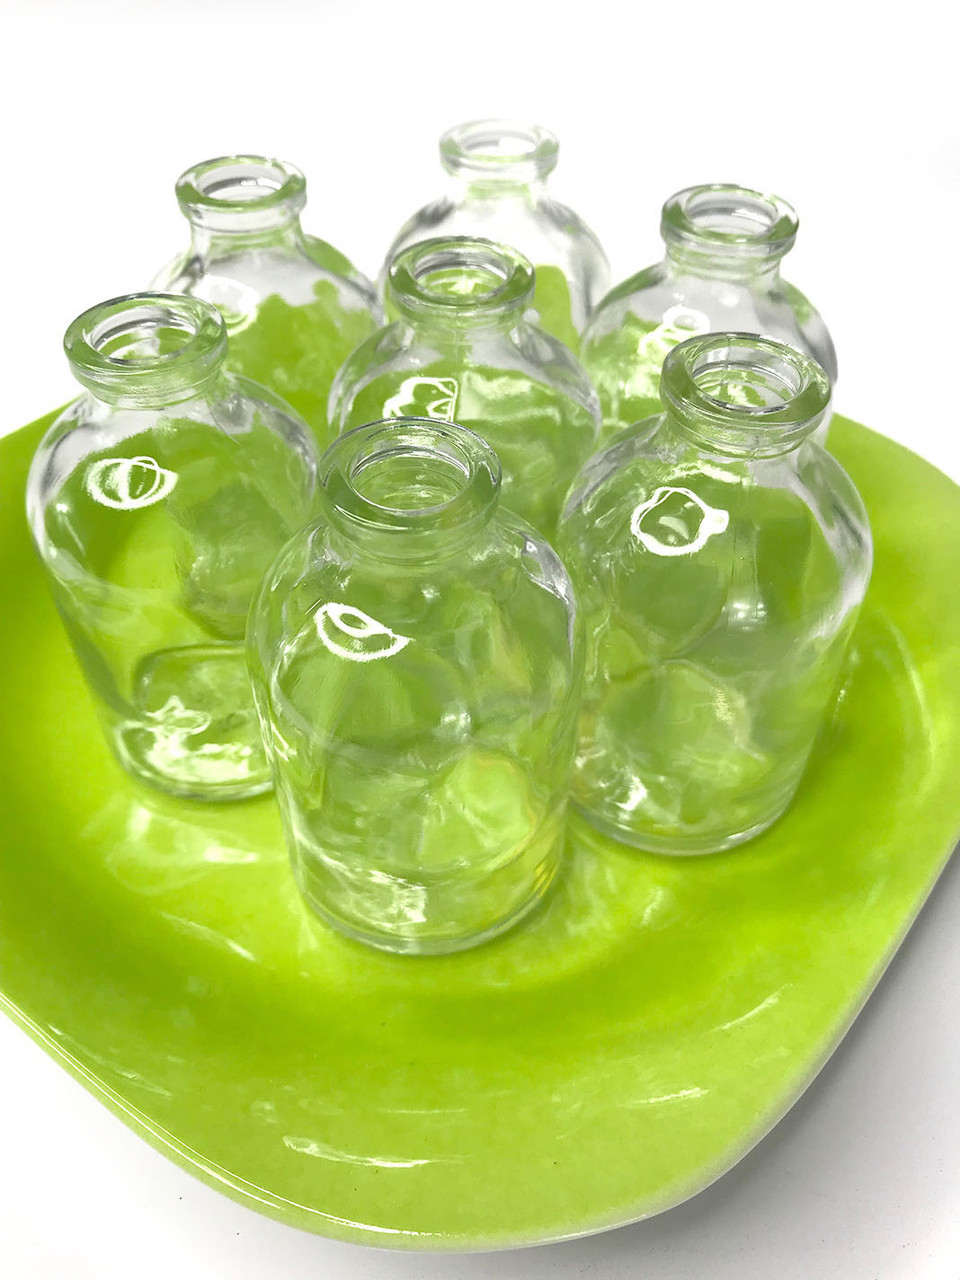 Clear Glass Bottles On Colorful Plates 4 Colors Available Cutest Things Ever Shopwildthings Com